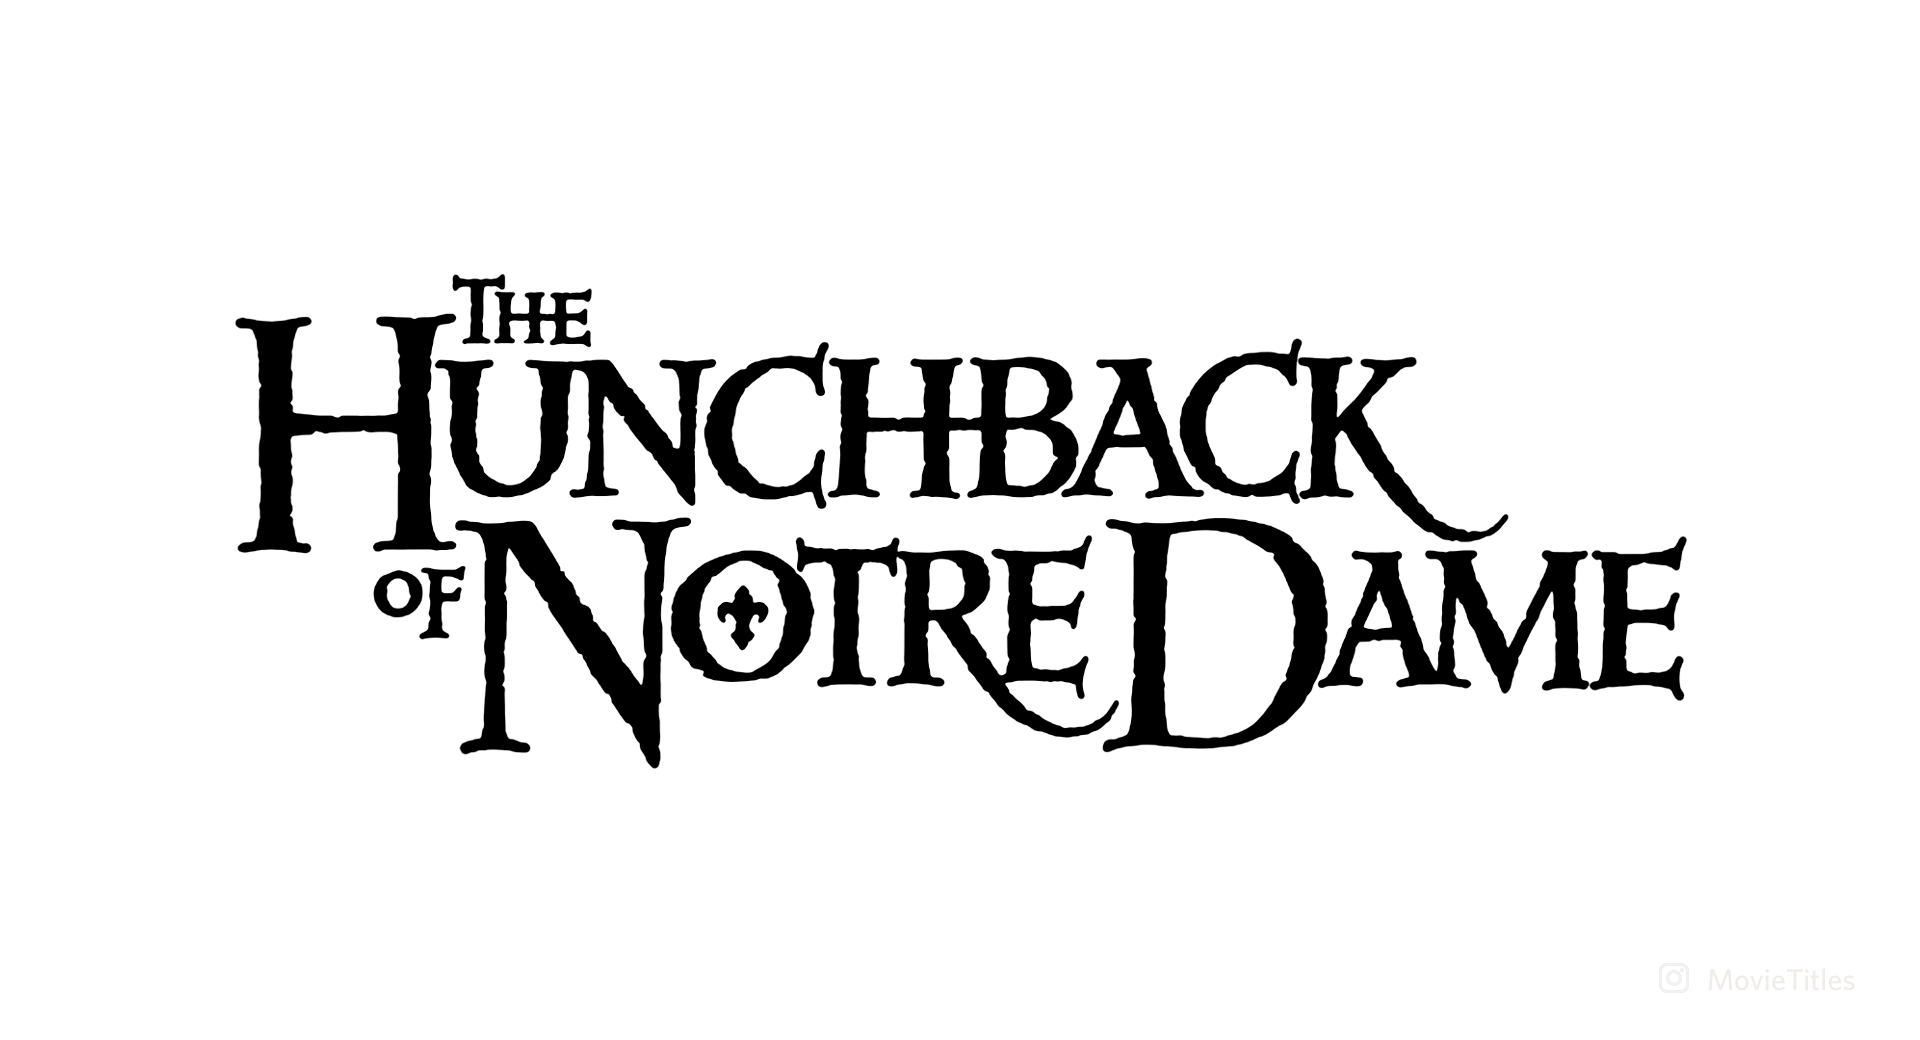 THE HUNCHBACK OF NOTRE DAME (1996) movie title, designed